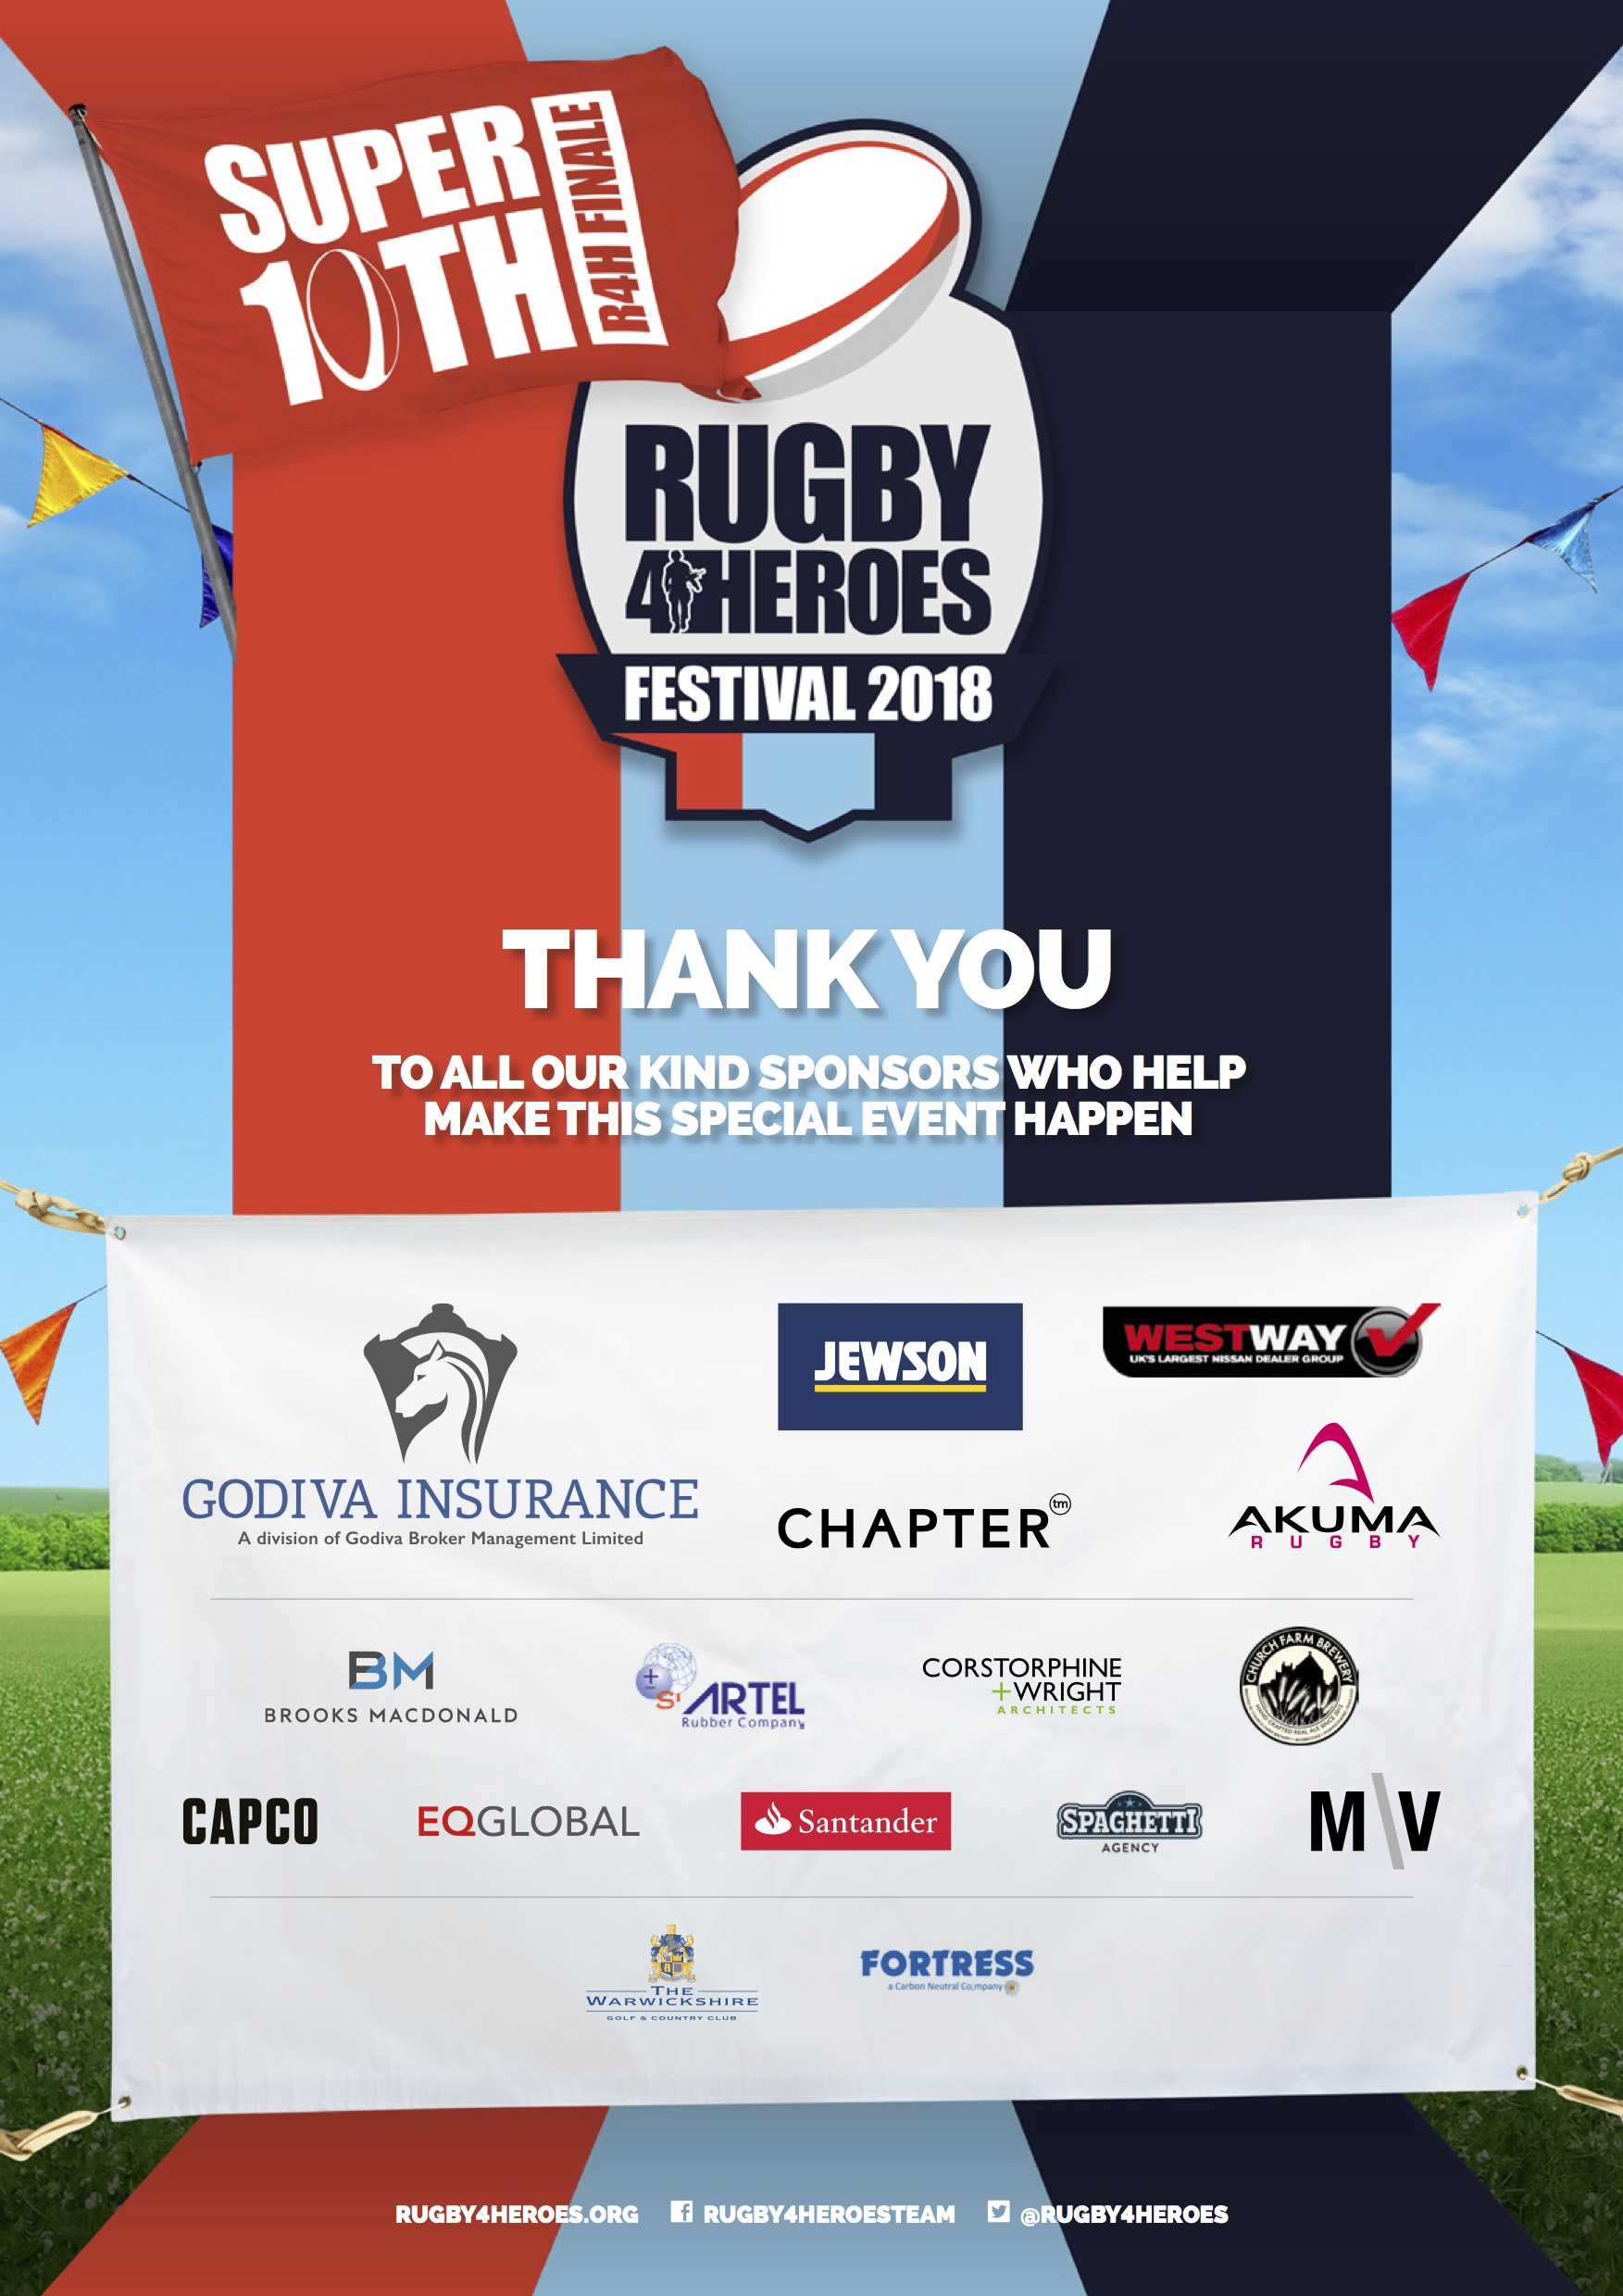 304564_Rugby4Heroes_Poster_Sponsor_Thankyou_002